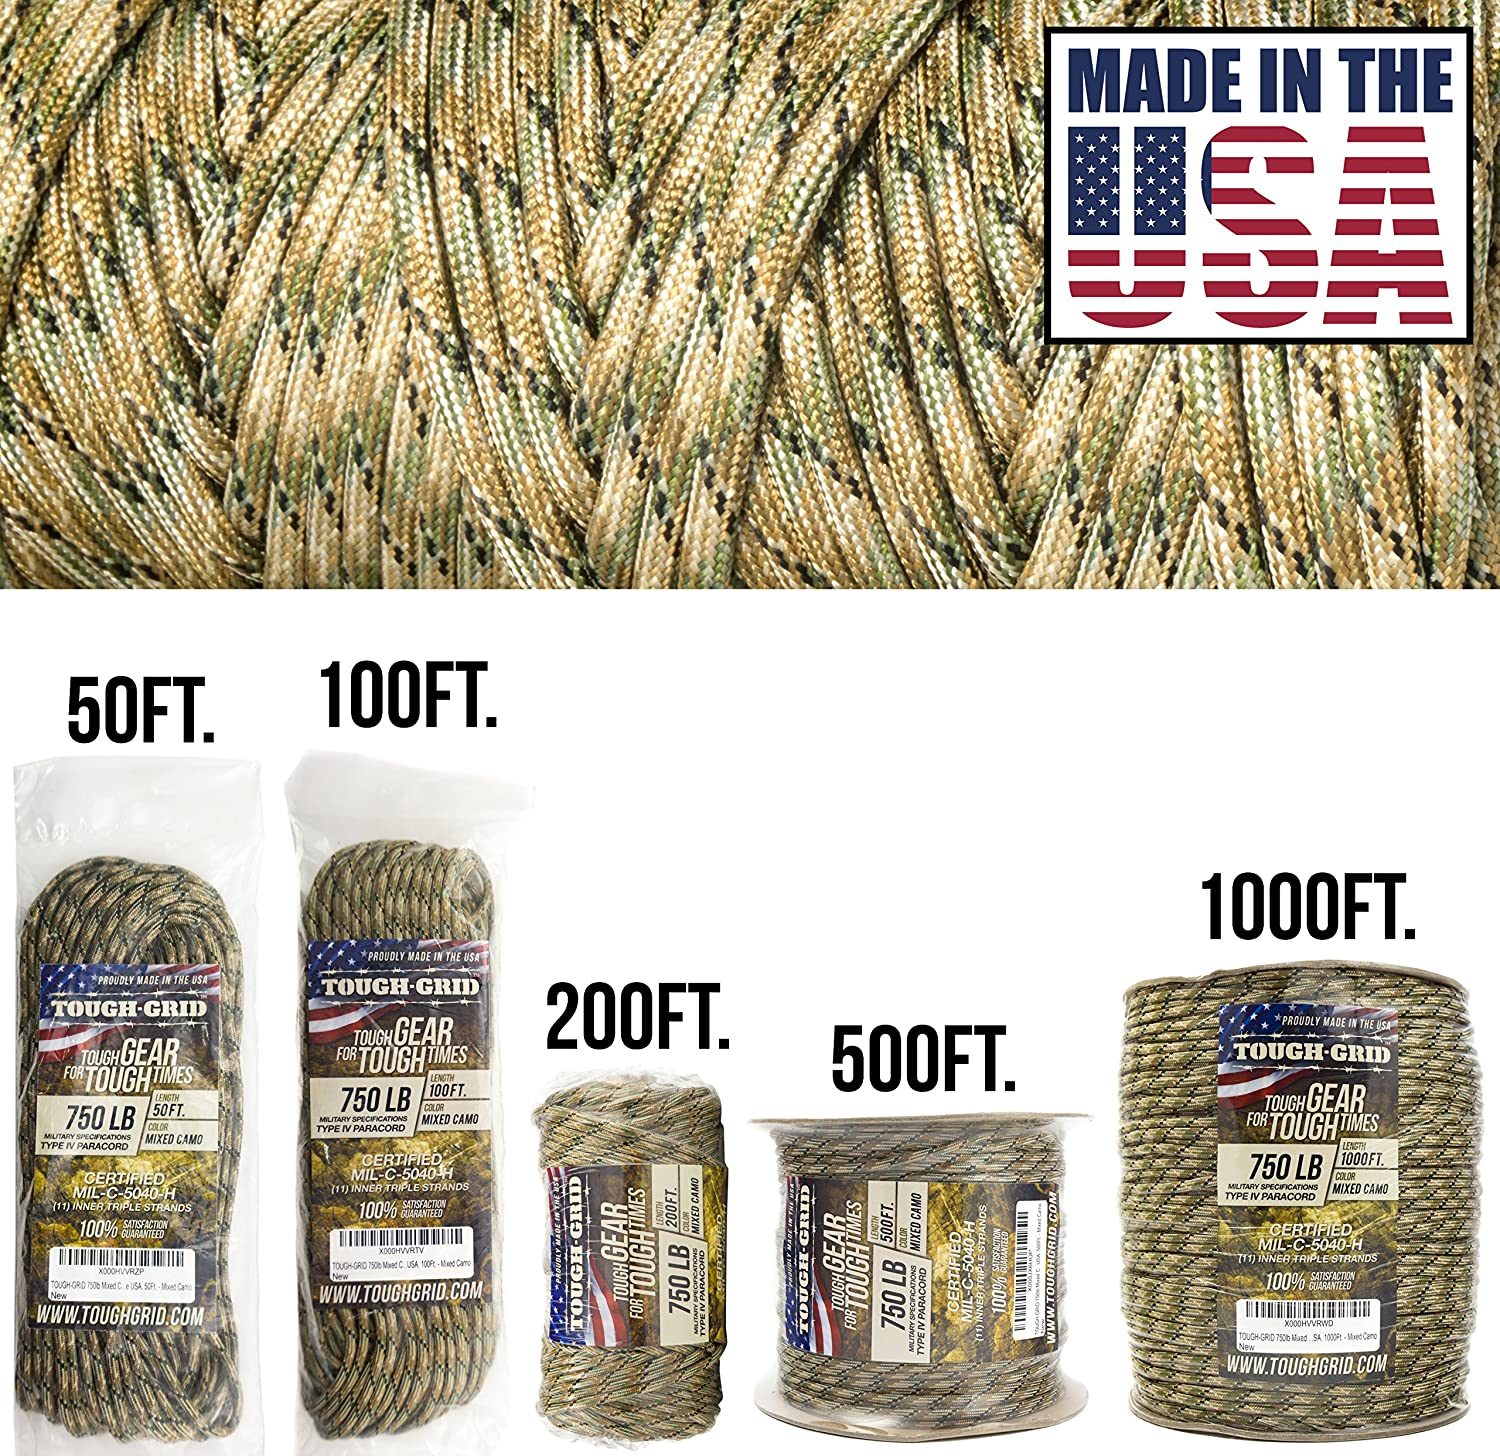 (300m (WOUND ON SPOOL), Mixed Camo)  TOUGHGRID 340kg Paracord Parachute Cord  Genuine Mil Spec Type IV 340kg Paracord Used by the US Military (MIlC5040H)  100% Nylon  Made In The USA.